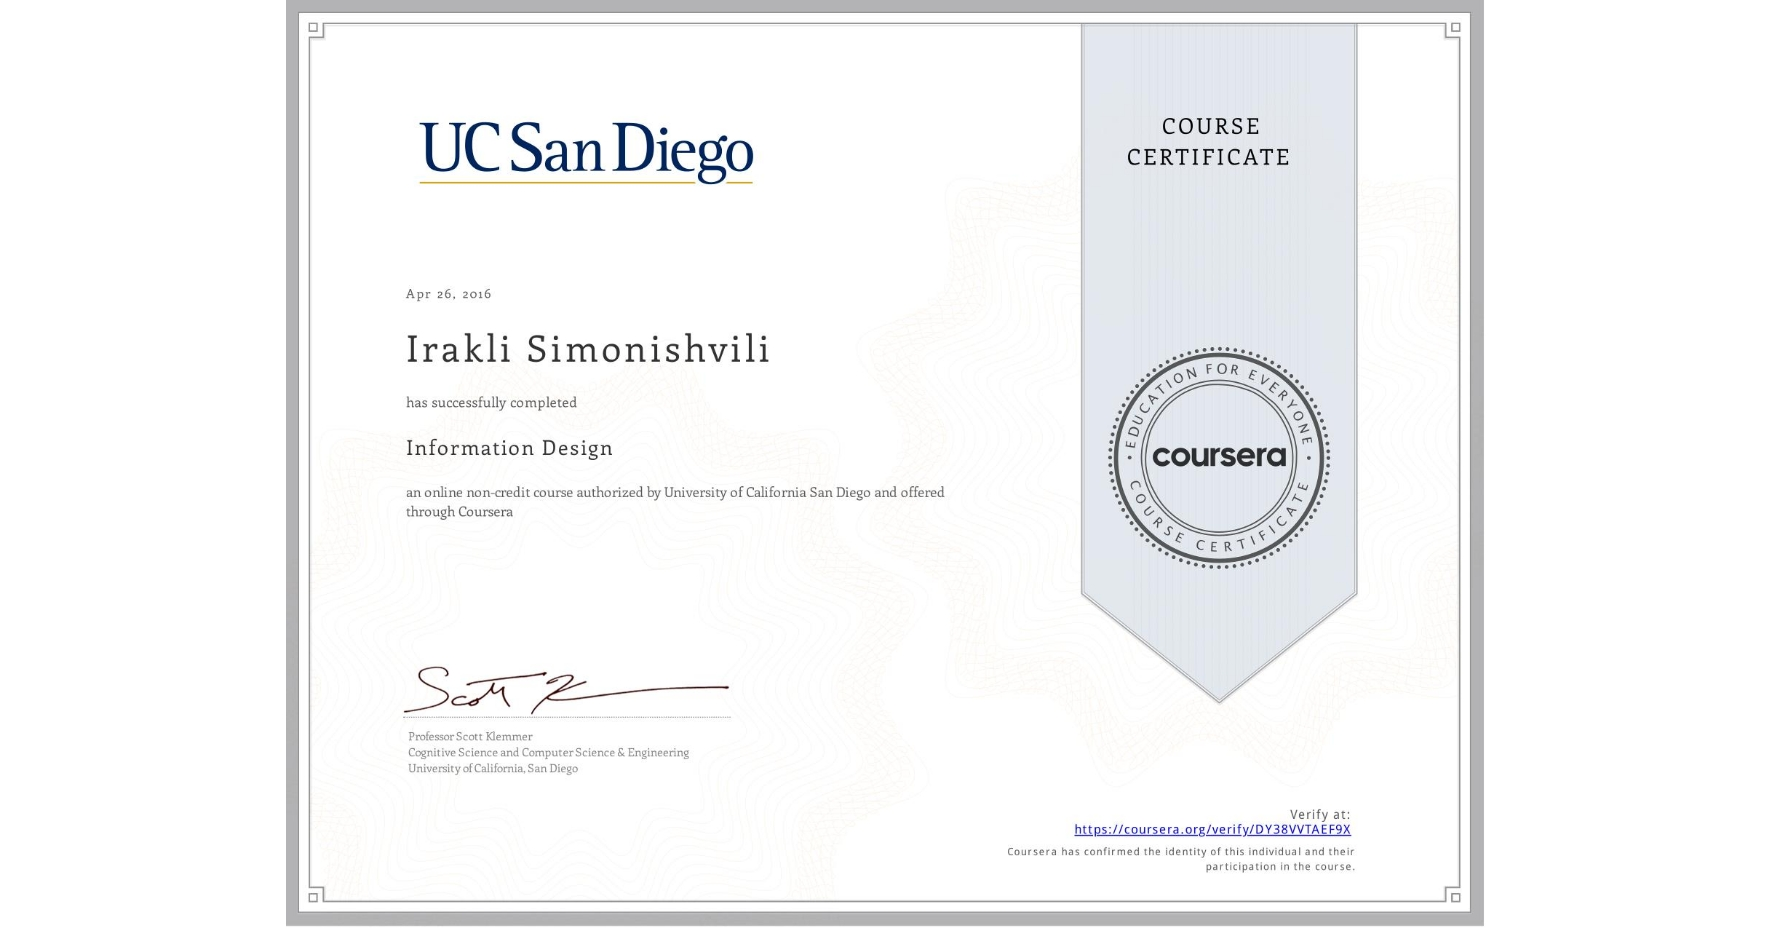 View certificate for Irakli Simonishvili, Information Design, an online non-credit course authorized by University of California San Diego and offered through Coursera